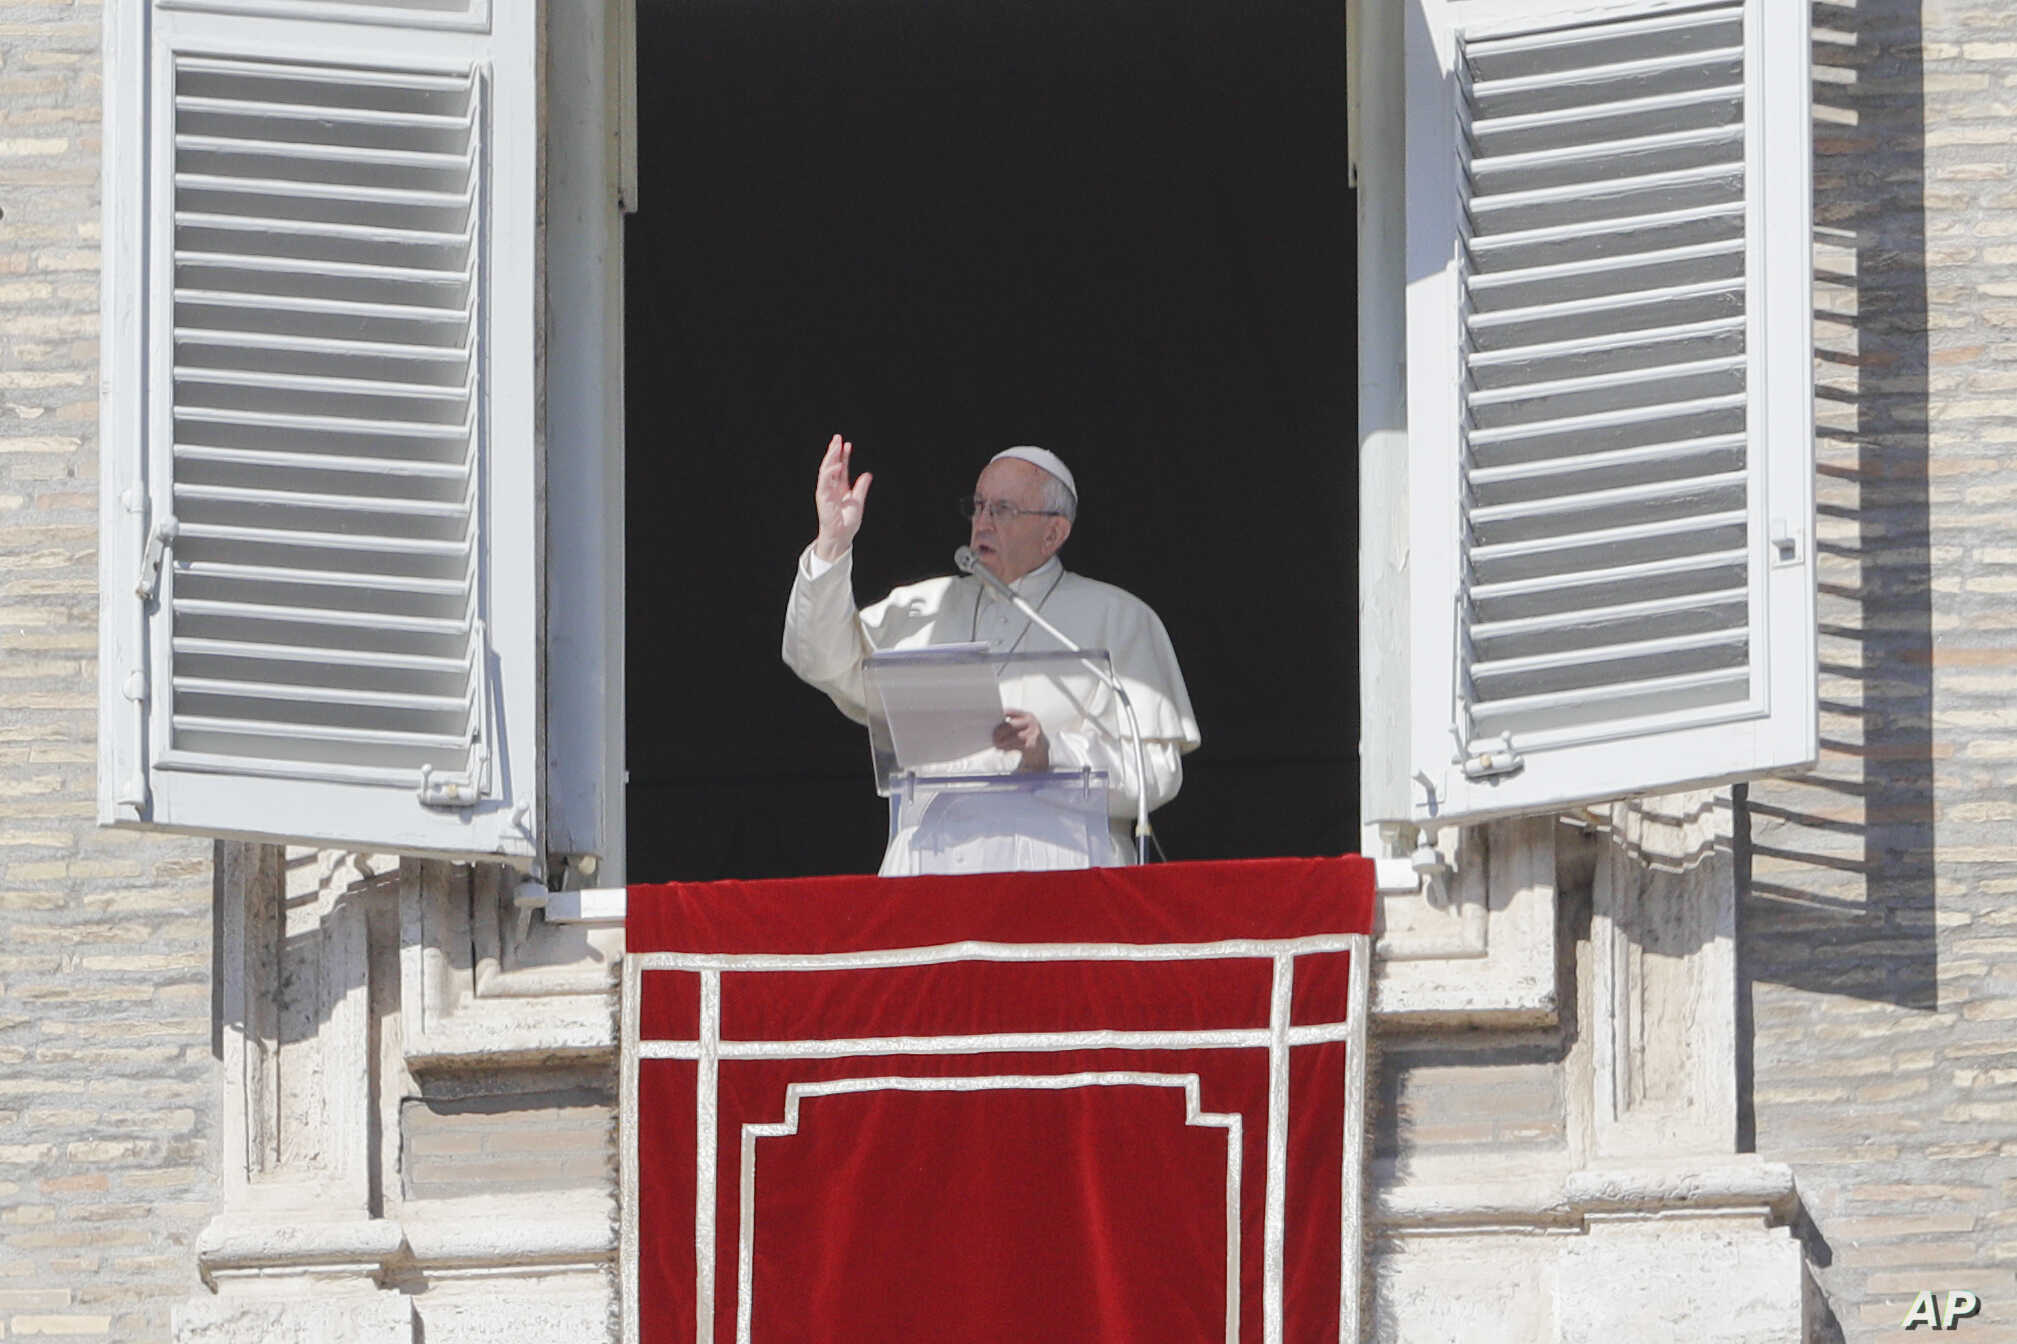 Pope Francis delivers a blessing from his studio window overlooking St. Peter's Square on the occasion of the Angelus noon prayer at the Vatican, Feb. 4, 2018.